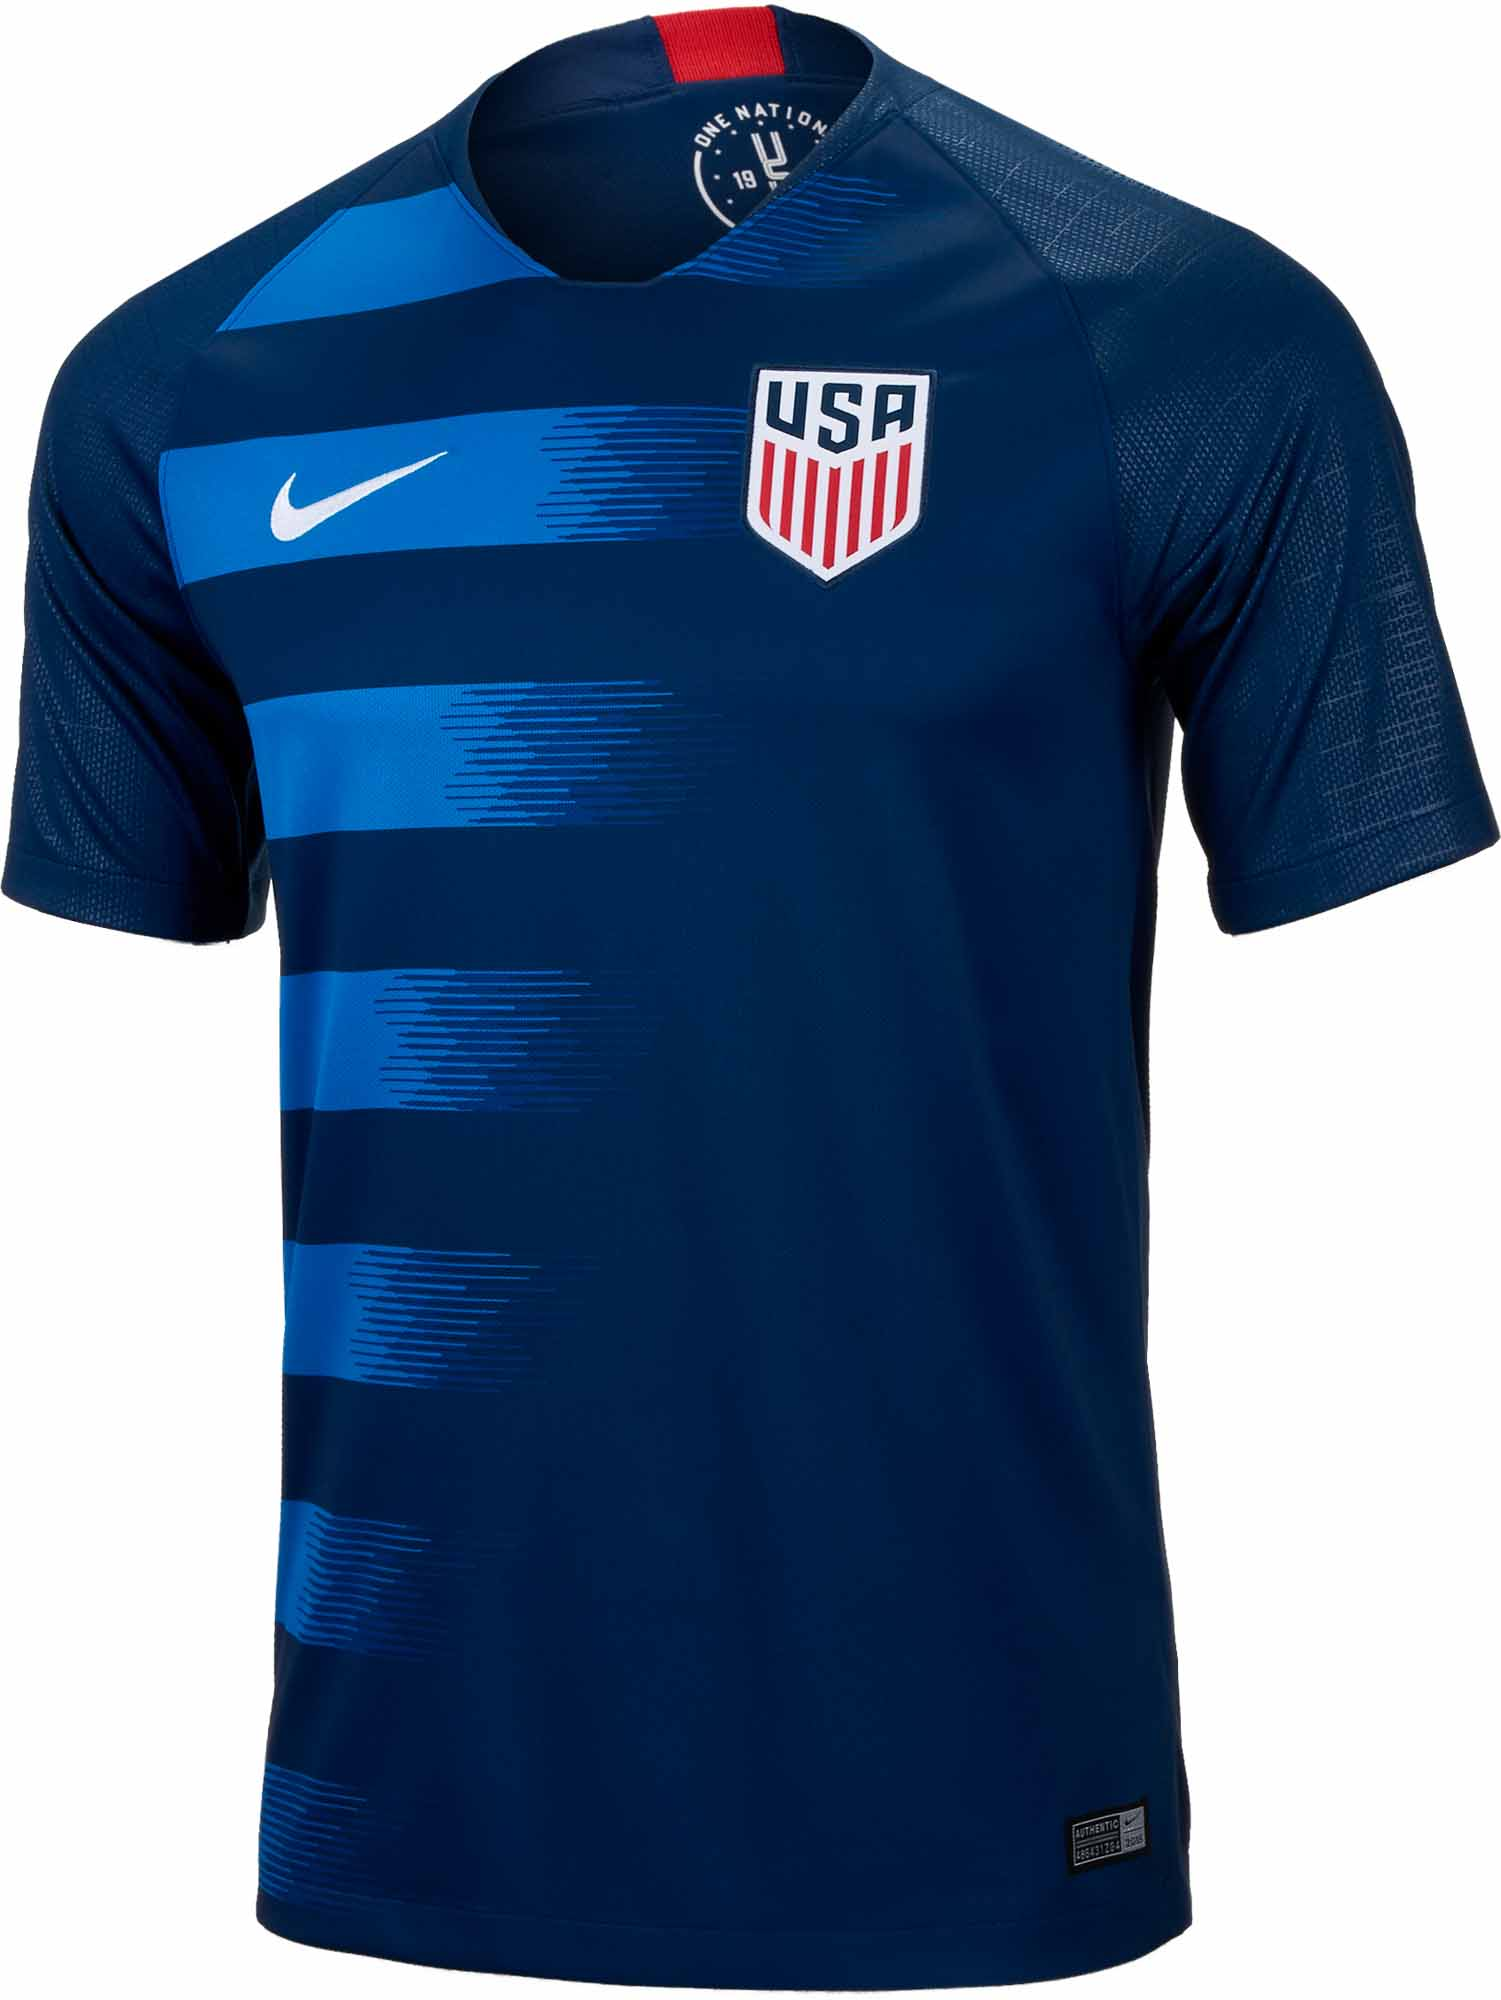 2bc1d4482 2018 19 Nike USA Away Jersey - Soccer Master